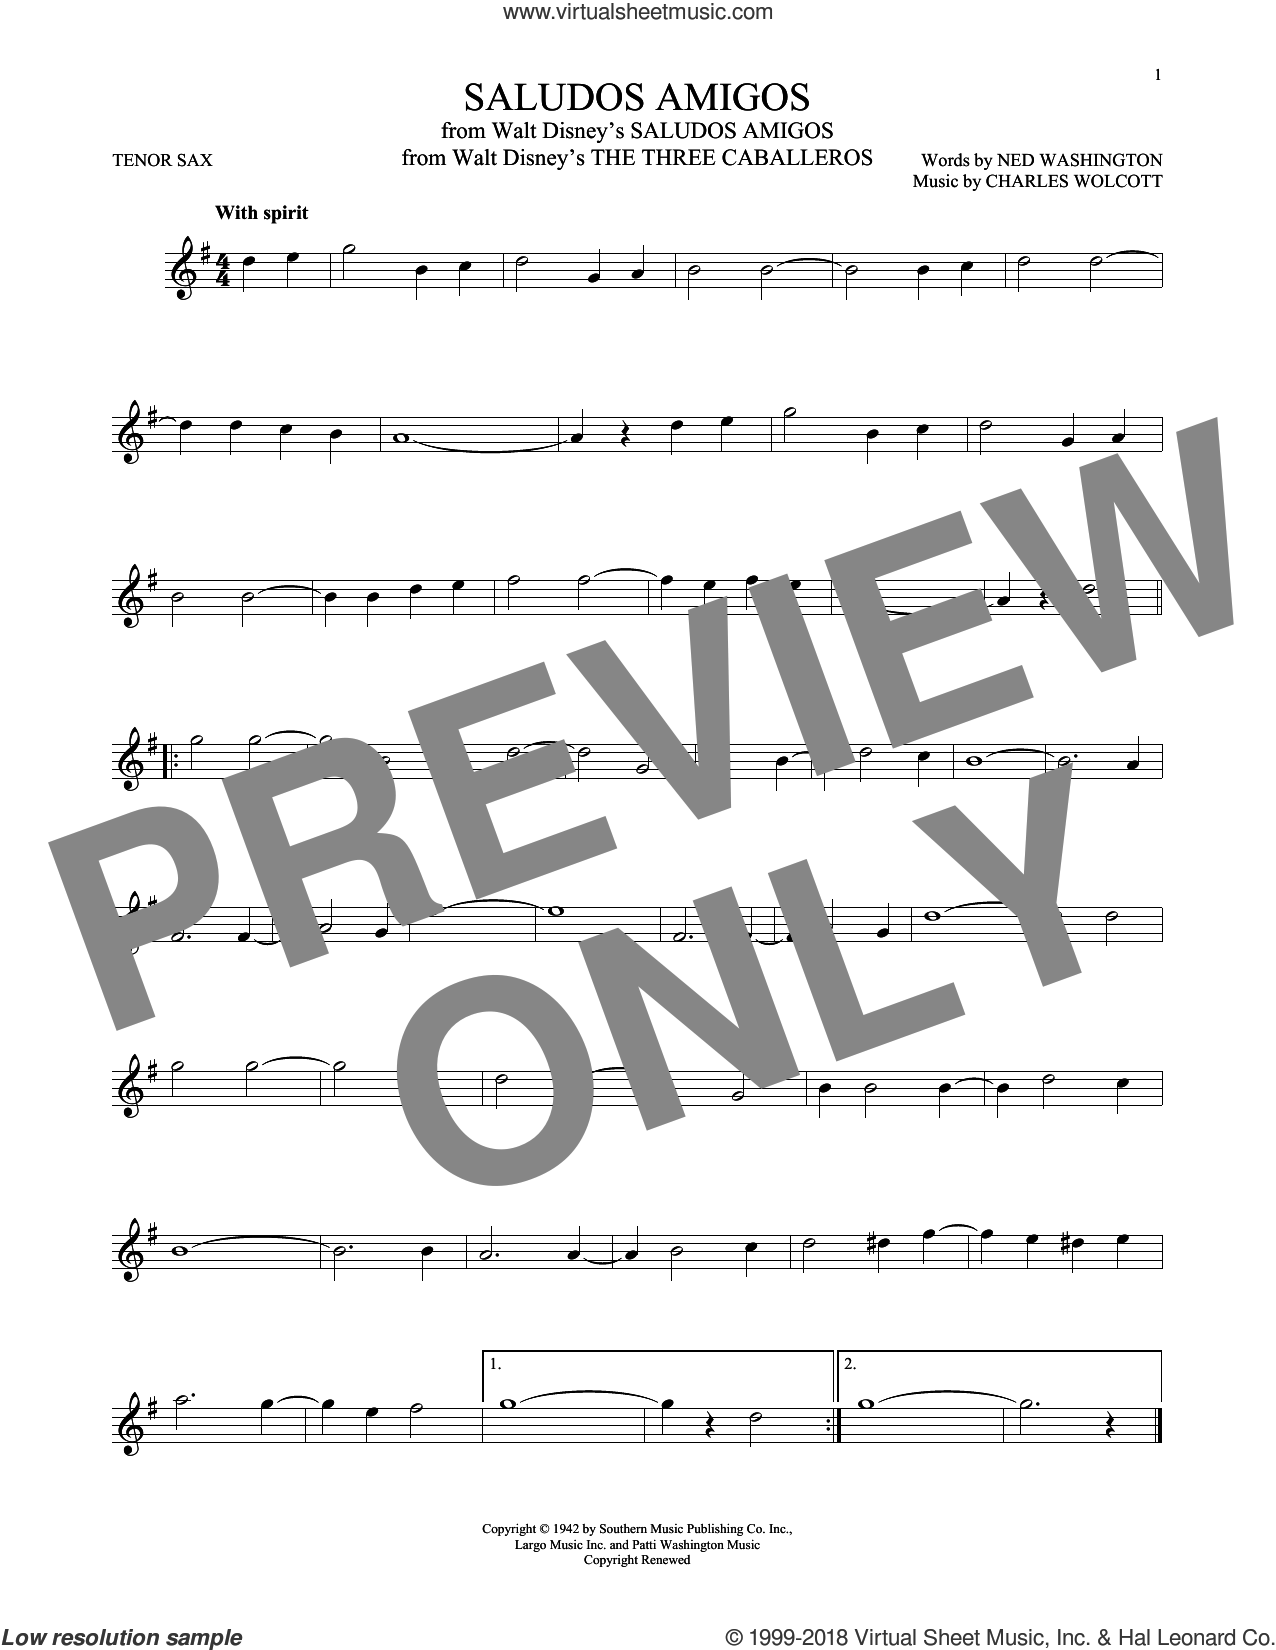 Saludos Amigos sheet music for tenor saxophone solo by Ned Washington and Charles Wolcott, intermediate skill level